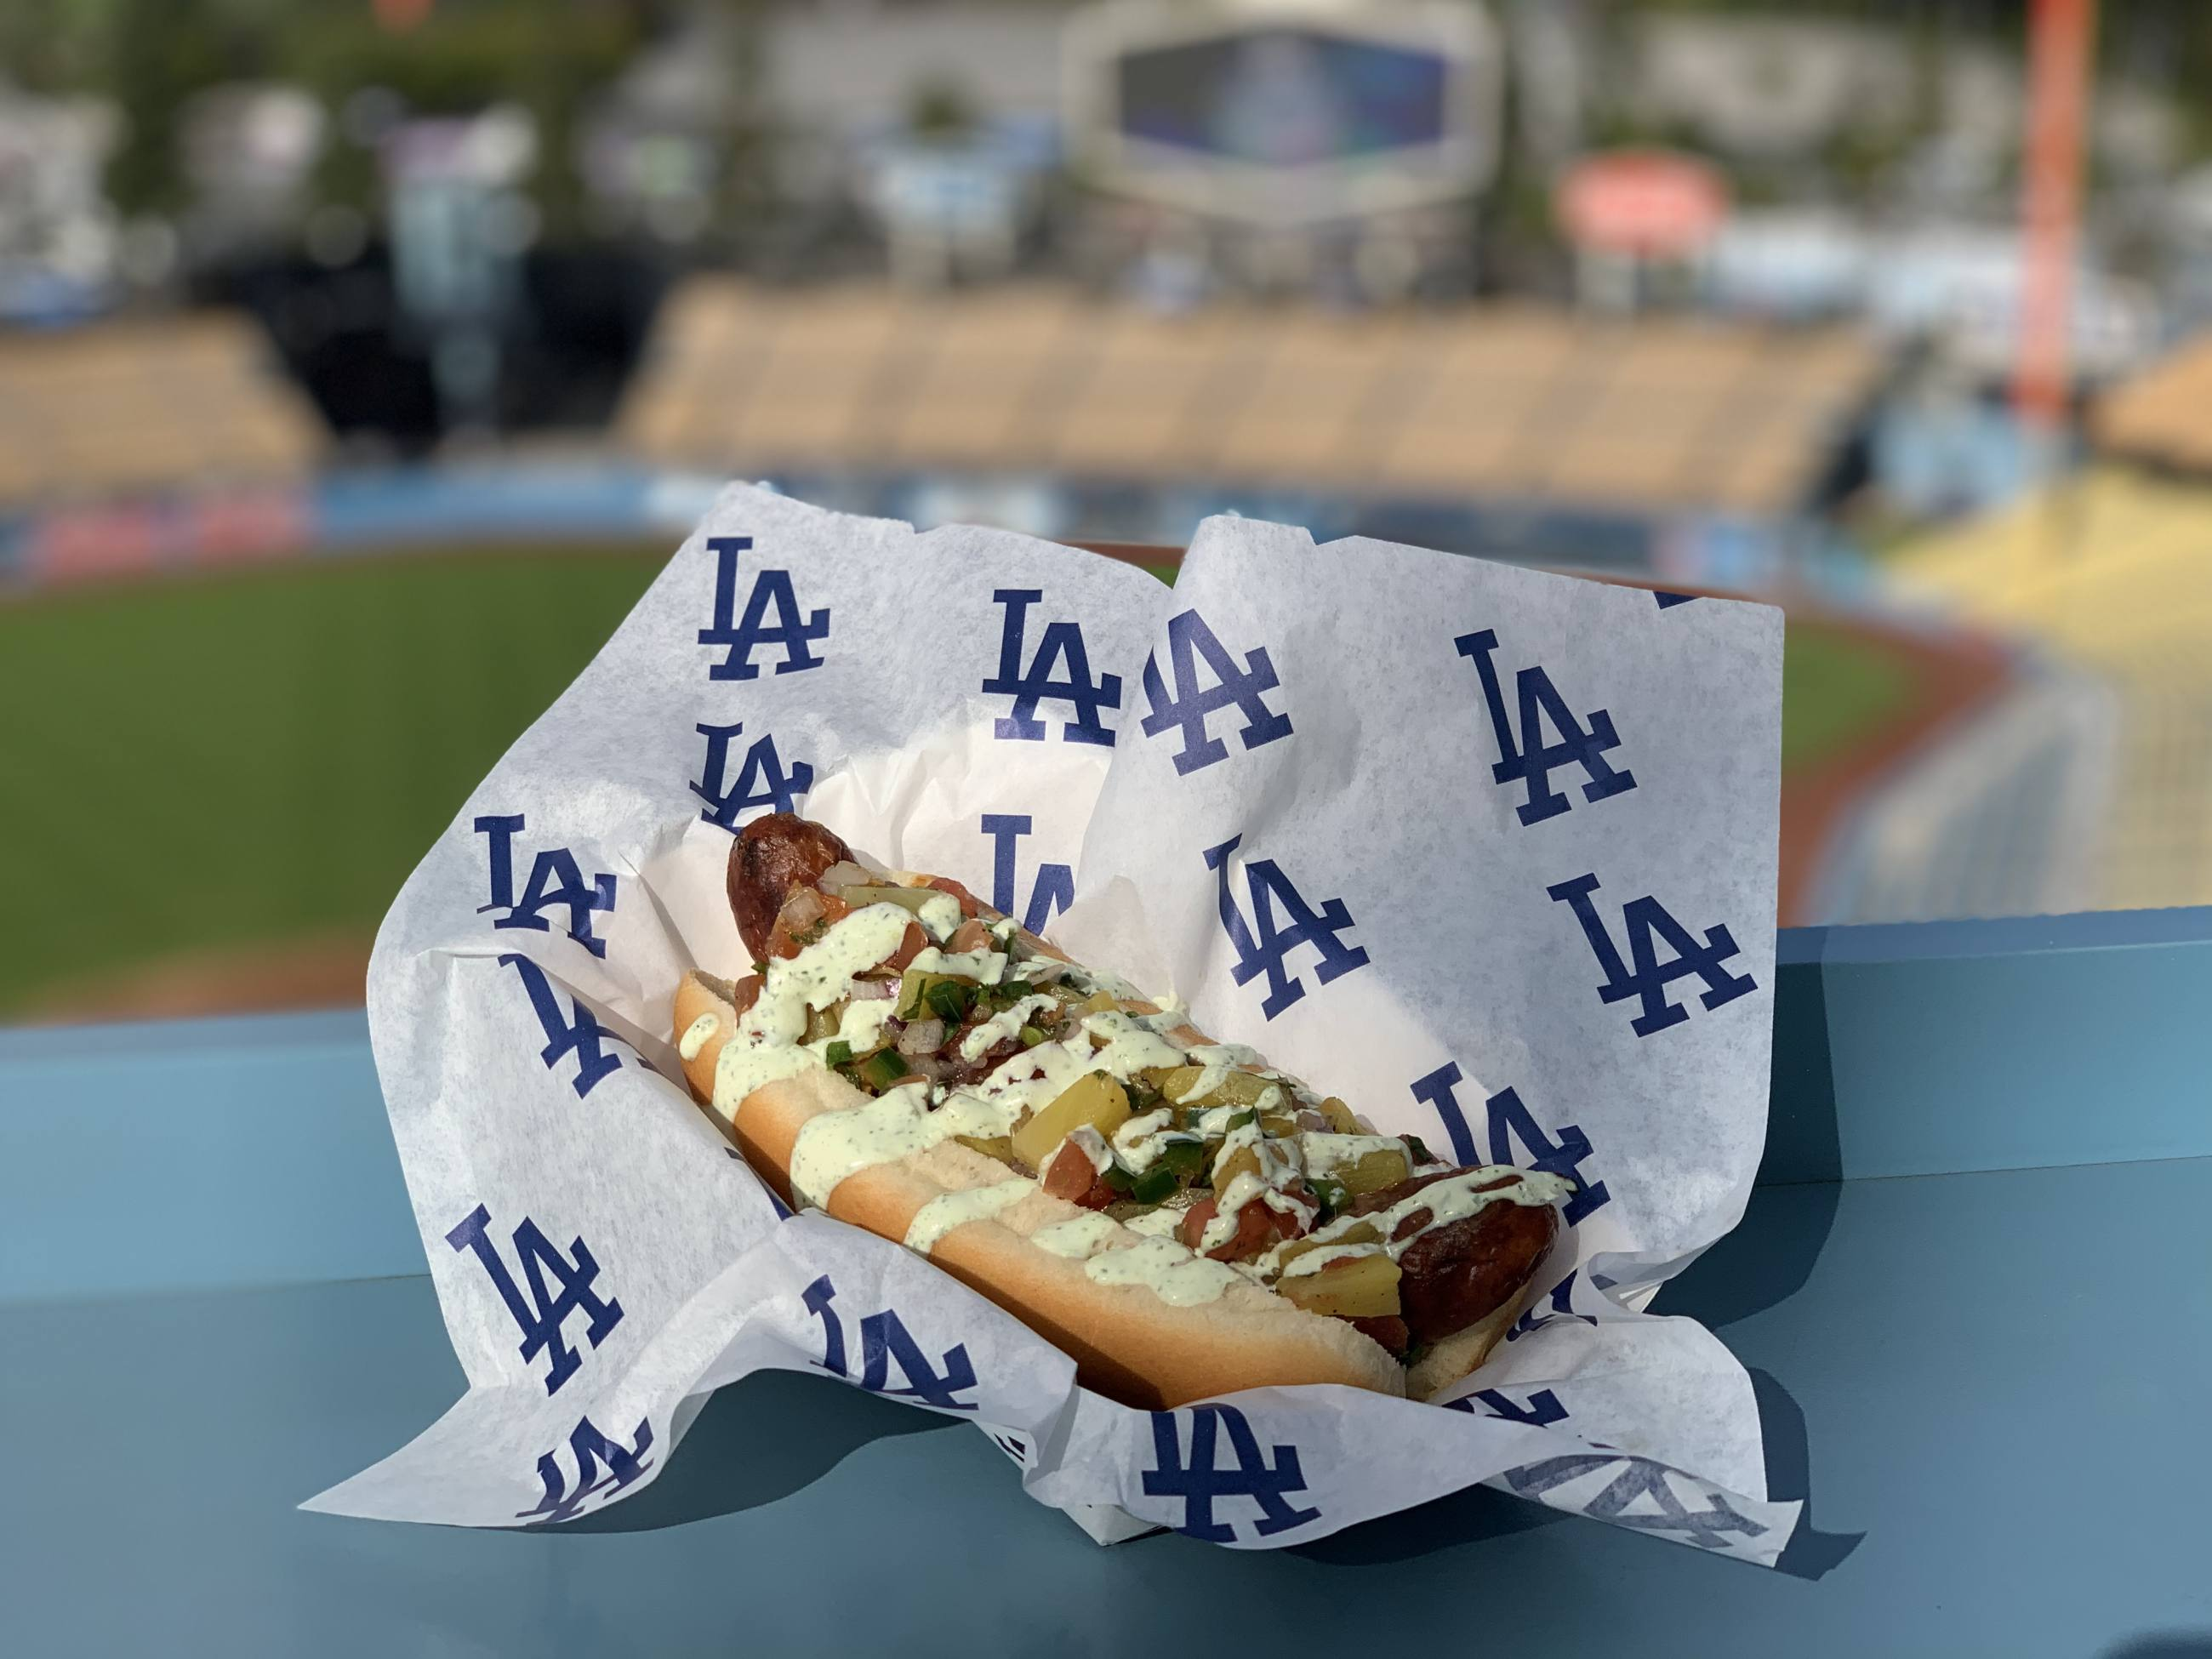 Dodger Sausage at Dodger Stadium